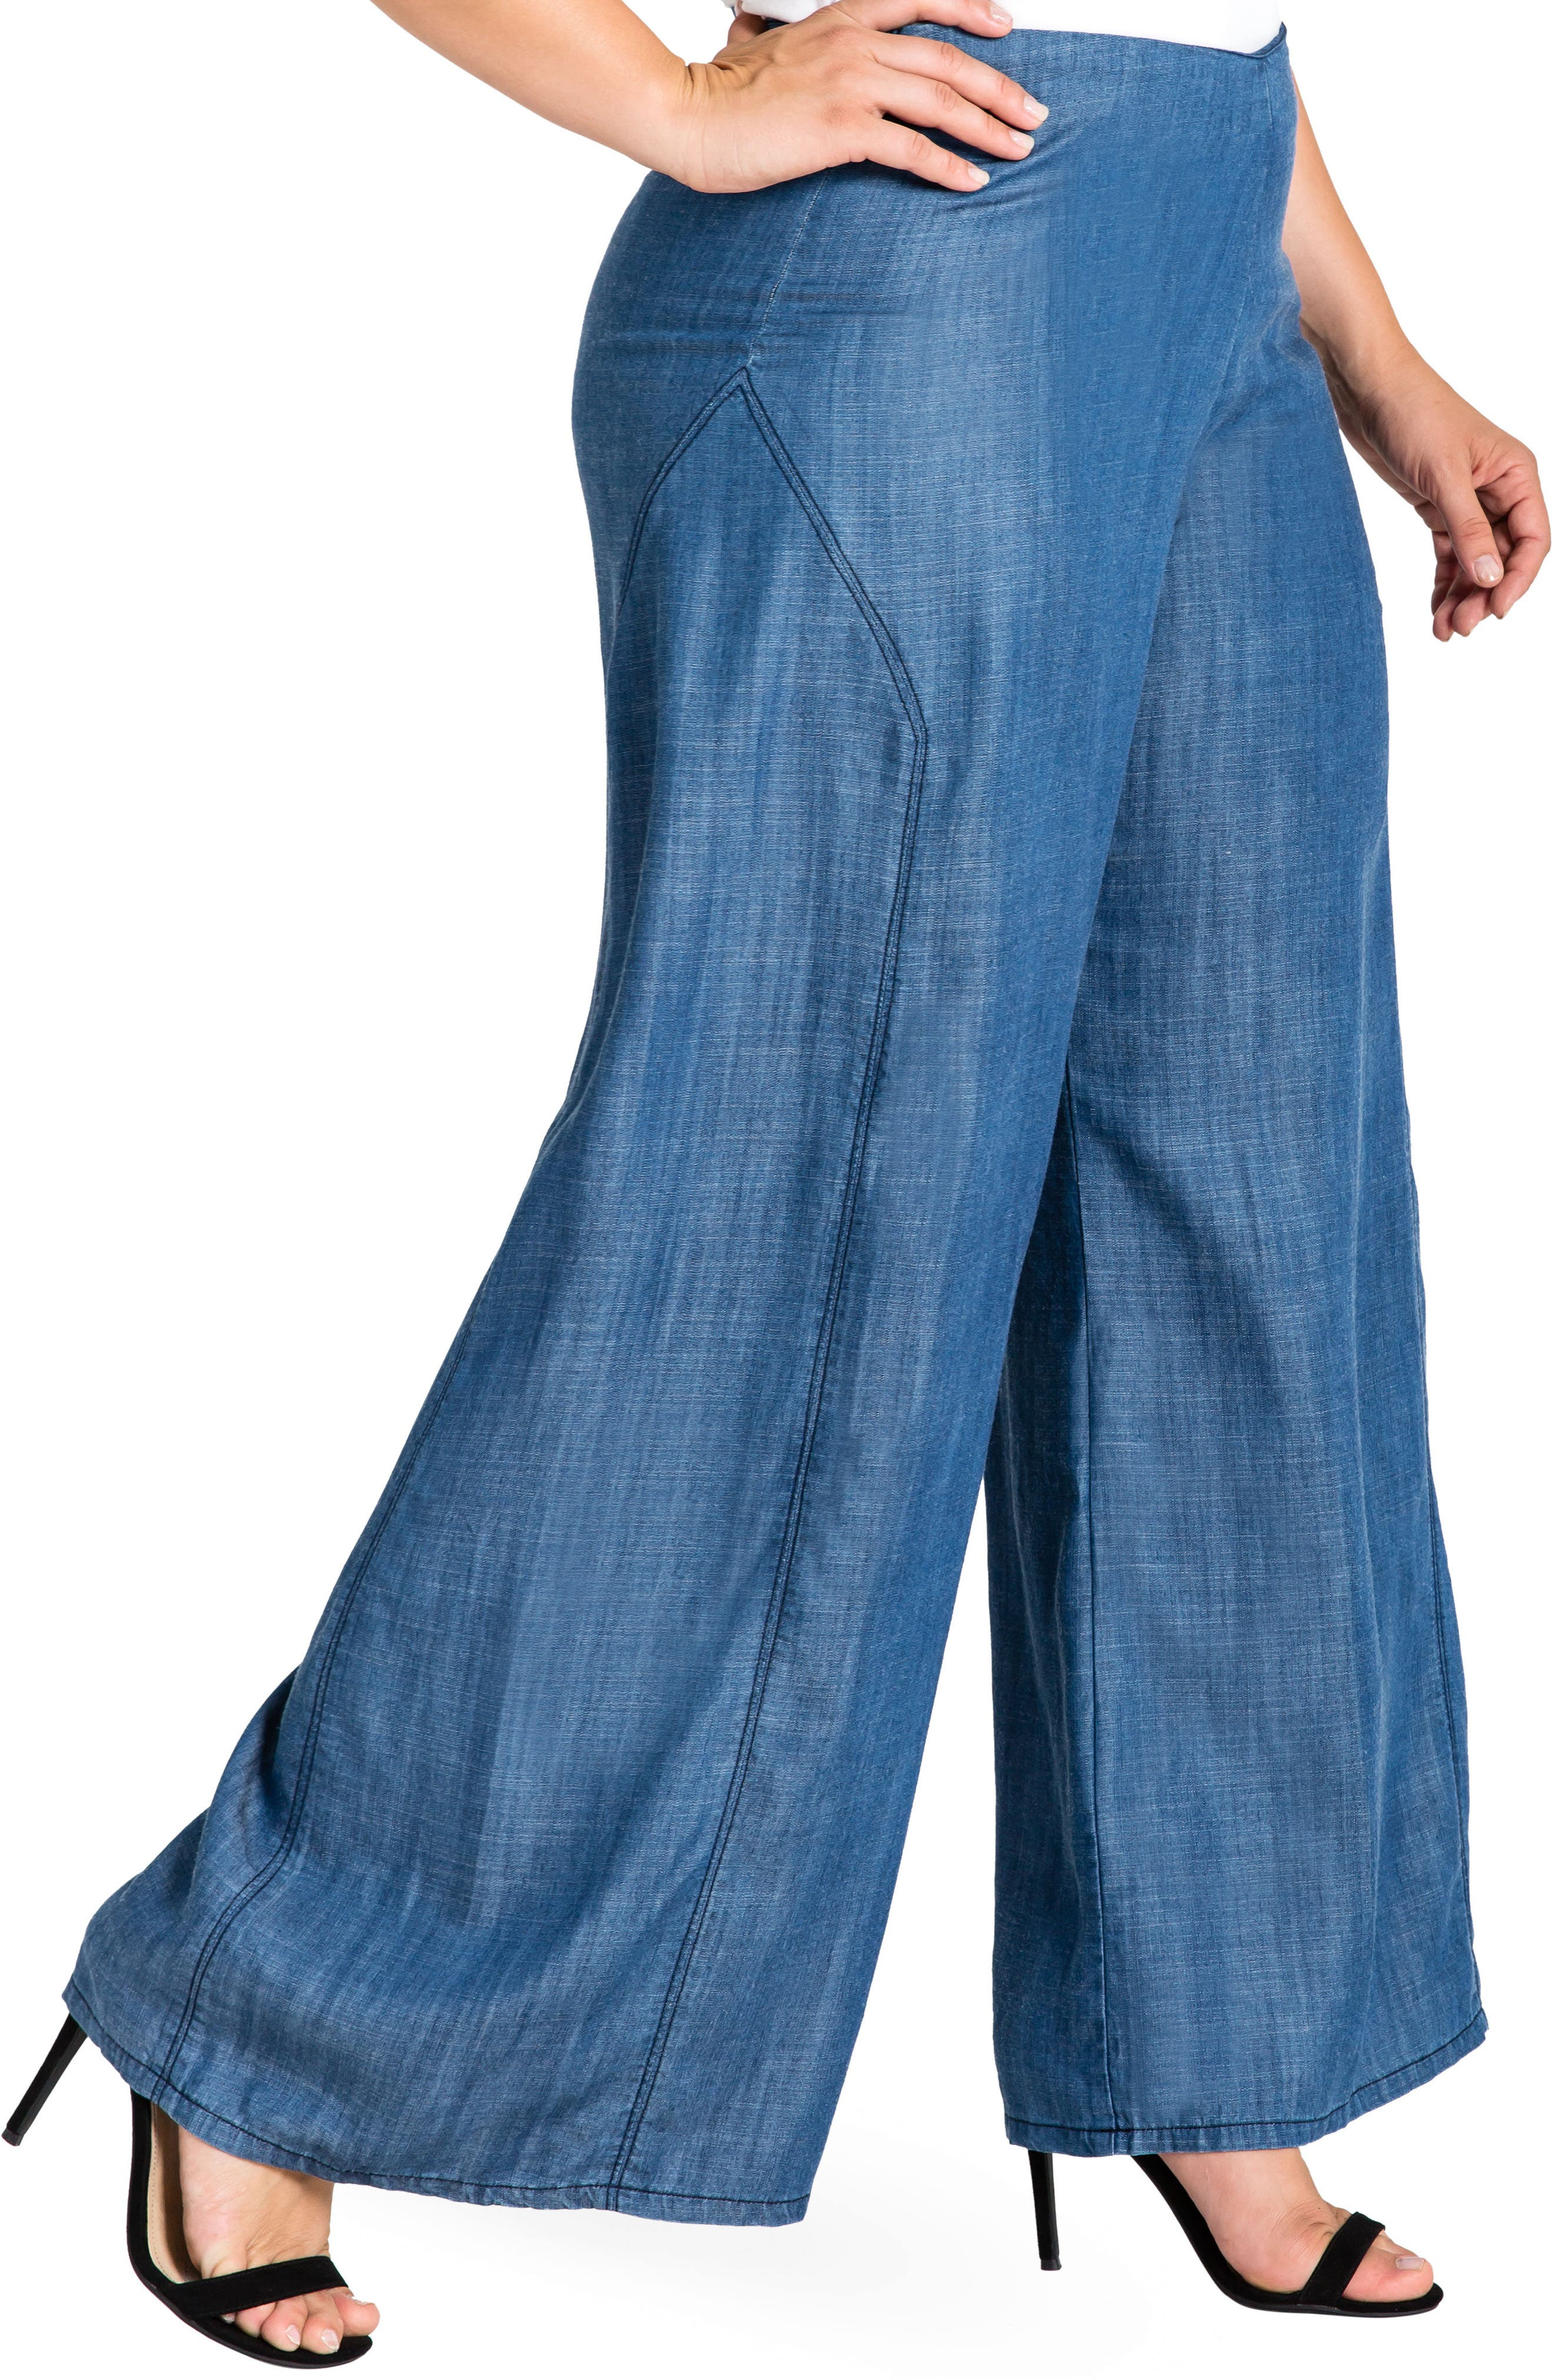 STANDARDS & PRACTICES,                             Perry Tencel<sup>®</sup> Denim Palazzo Pants,                             Alternate thumbnail 3, color,                             ALMOST RINSED